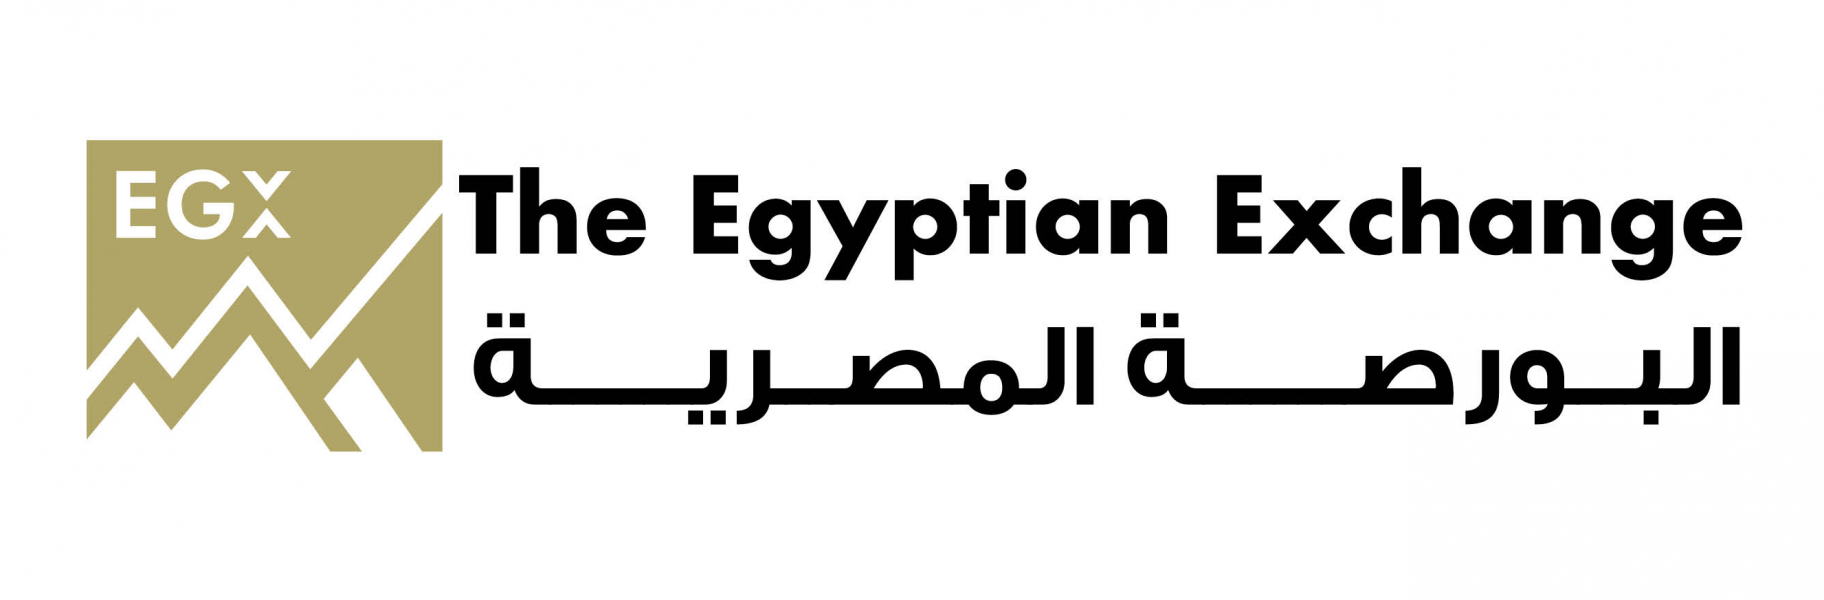 The-Egyptian-Exchange-Approves-periodical-review-o